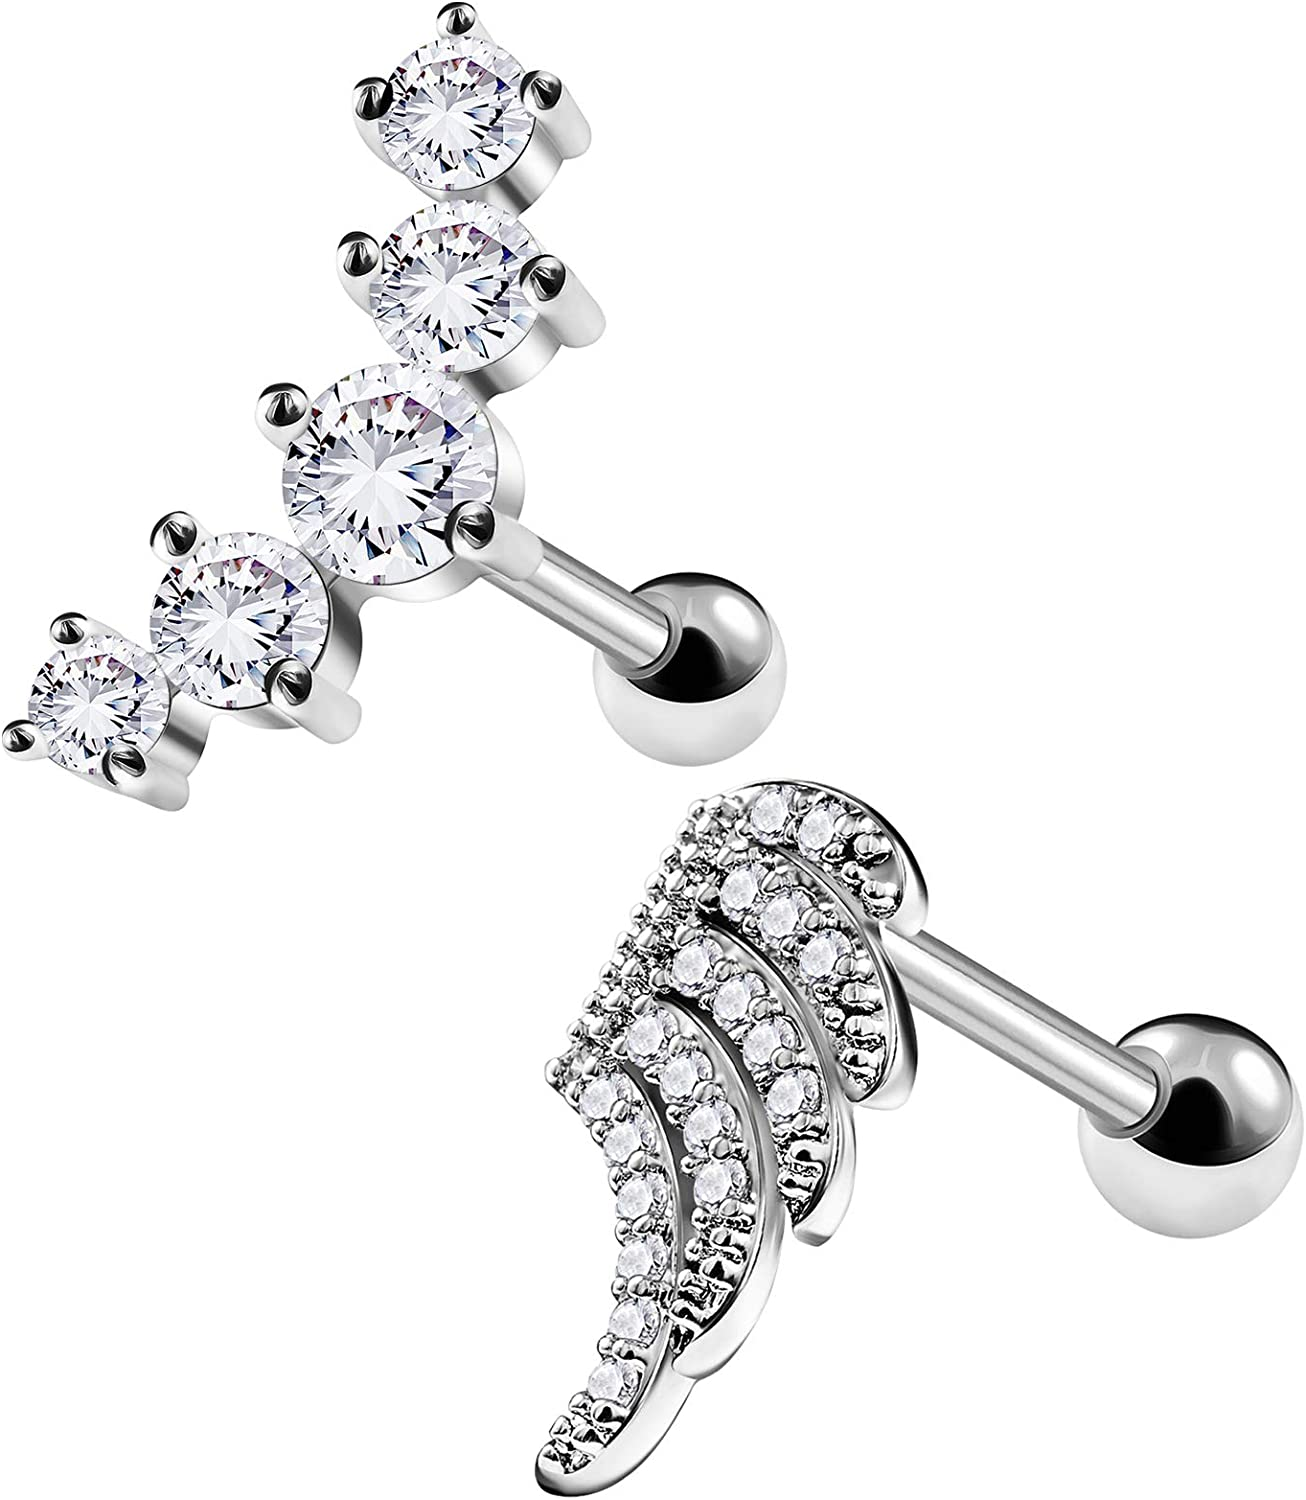 BIG GAUGES Pair of 316L Surgical Steel 16g Gauge 1.2mm 1/4 (6mm) Clear CZ Crystal Tragus Helix Cartilage Piercing Jewelry Earrings Lobe